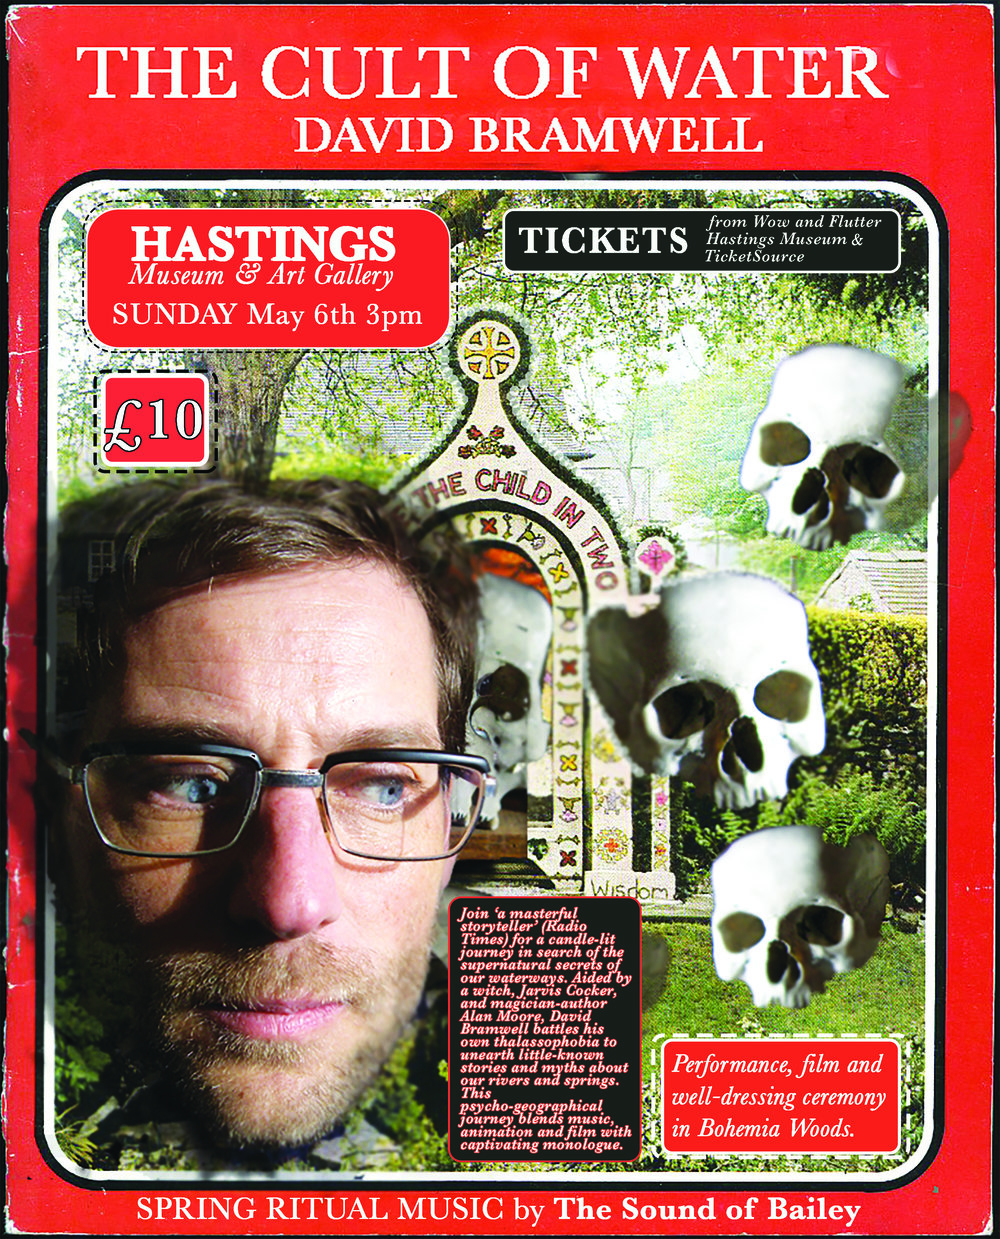 Join 'a masterful storyteller' (Radio Times) for a candle-lit journey in search of the supernatural secrets of our waterways.  Aided by a witch, Jarvis Cocker, and magician-author Alan Moore, David Bramwell battles his own thalassophobia (the fear of 'what lurks beneath') to unearth little-known stories and myths that surround our rivers.  The River Don is the focal point for this psycho-geographical journey that blends music, animation and film with captivating monologue.  David Bramwell takes audiences on a dream-like journey in search of the occult secrets of our waterways and a drowned village, which has long haunted his memories.  From Doncaster (where he grew up) Bramwell travels up the river Don and back in time, through the ladybird plague and drought of 1976 to the heavily polluted Don of Sheffield's steel industry, up into the Pennines and back into a pre-Christian era when rivers and springs were worshipped as living deities.  Along the journey Bramwell battles with his own thalassophobia (the fear of 'what lurks beneath'); learns about hydromancy from magician Alan Moore, discovers a unique forest of figs growing on the banks of the Don and encounters Jarvis Cocker on his own adventures, sailing down the Don on an inflatable inner tube.  His journey finally brings him face to face with the goddess of primordial waters, Danu, who gave her name to the Don.  The story climaxes in Hastings, with the remarkable discovery of an ancient spring and how it came to save the life of a dying man.  At heart this is a meditation on the symbolic power of rivers and inland waterways and the profound ways in which they affect our sense of well-being.  As a special Hastings feature of this performance, we shall begin at the Mock Roman Bath in Summerfields Woods for a well-dressing ceremony, with ritual spring music performed by The Sound of Bailey. We invite attendees to bring flowers to dedicate to the spirits of the spring.  LAST FEW TICKETS - Book over the phone by texting 07786 686 786 / Buy Online via TicketSource:  https://www.ticketsource.co.uk/date/483856   Or get in person from the Museum or Wow and Flutter Record shop 8 Trinity Street, Hastings.  https://wowandflutterhastings.com